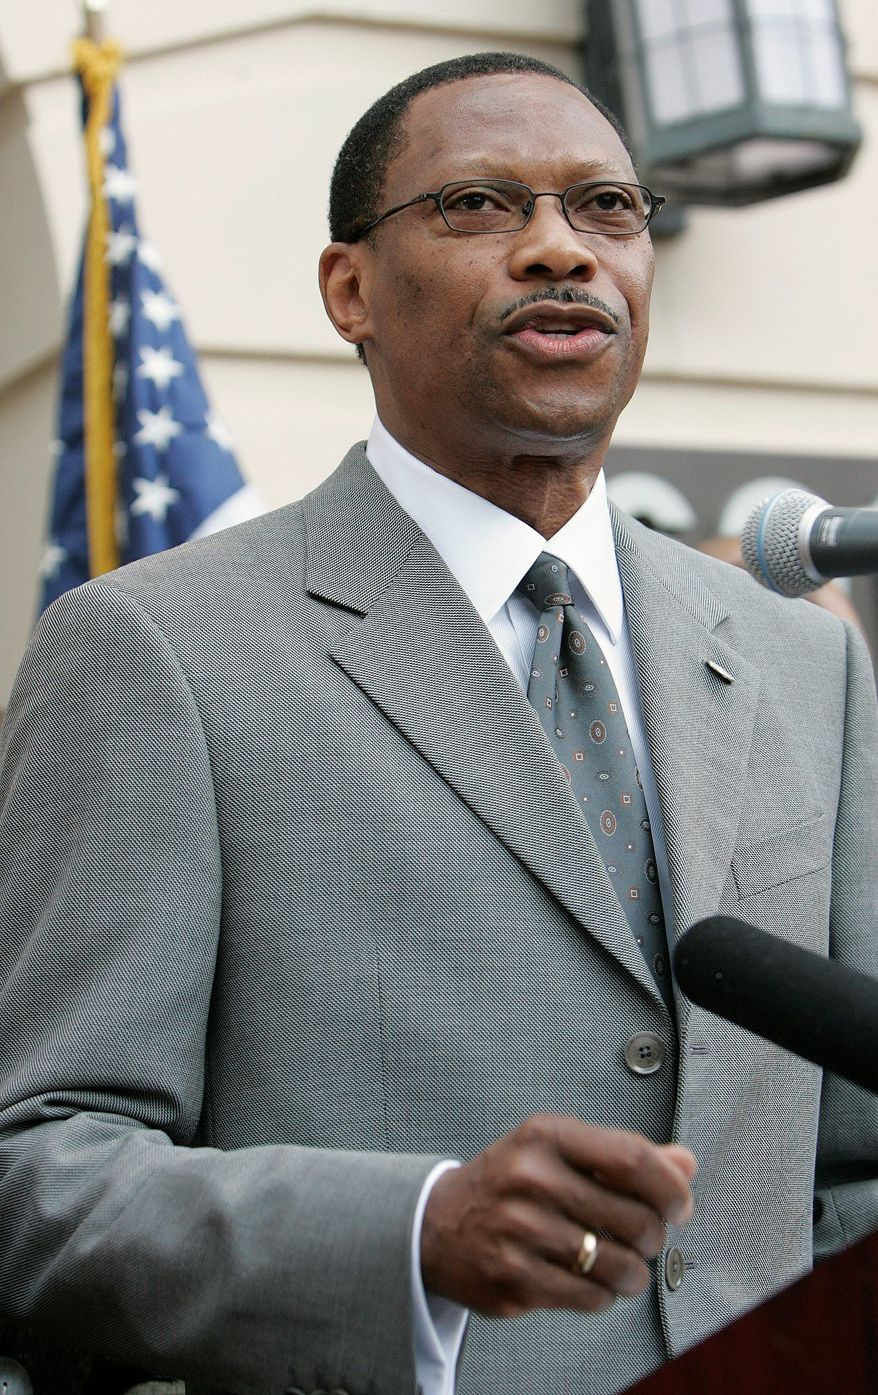 James Ammons, the president of Florida A&M University, will step down from his position at the school. His resignation takes effect on Oct. 11. (Associated Press)